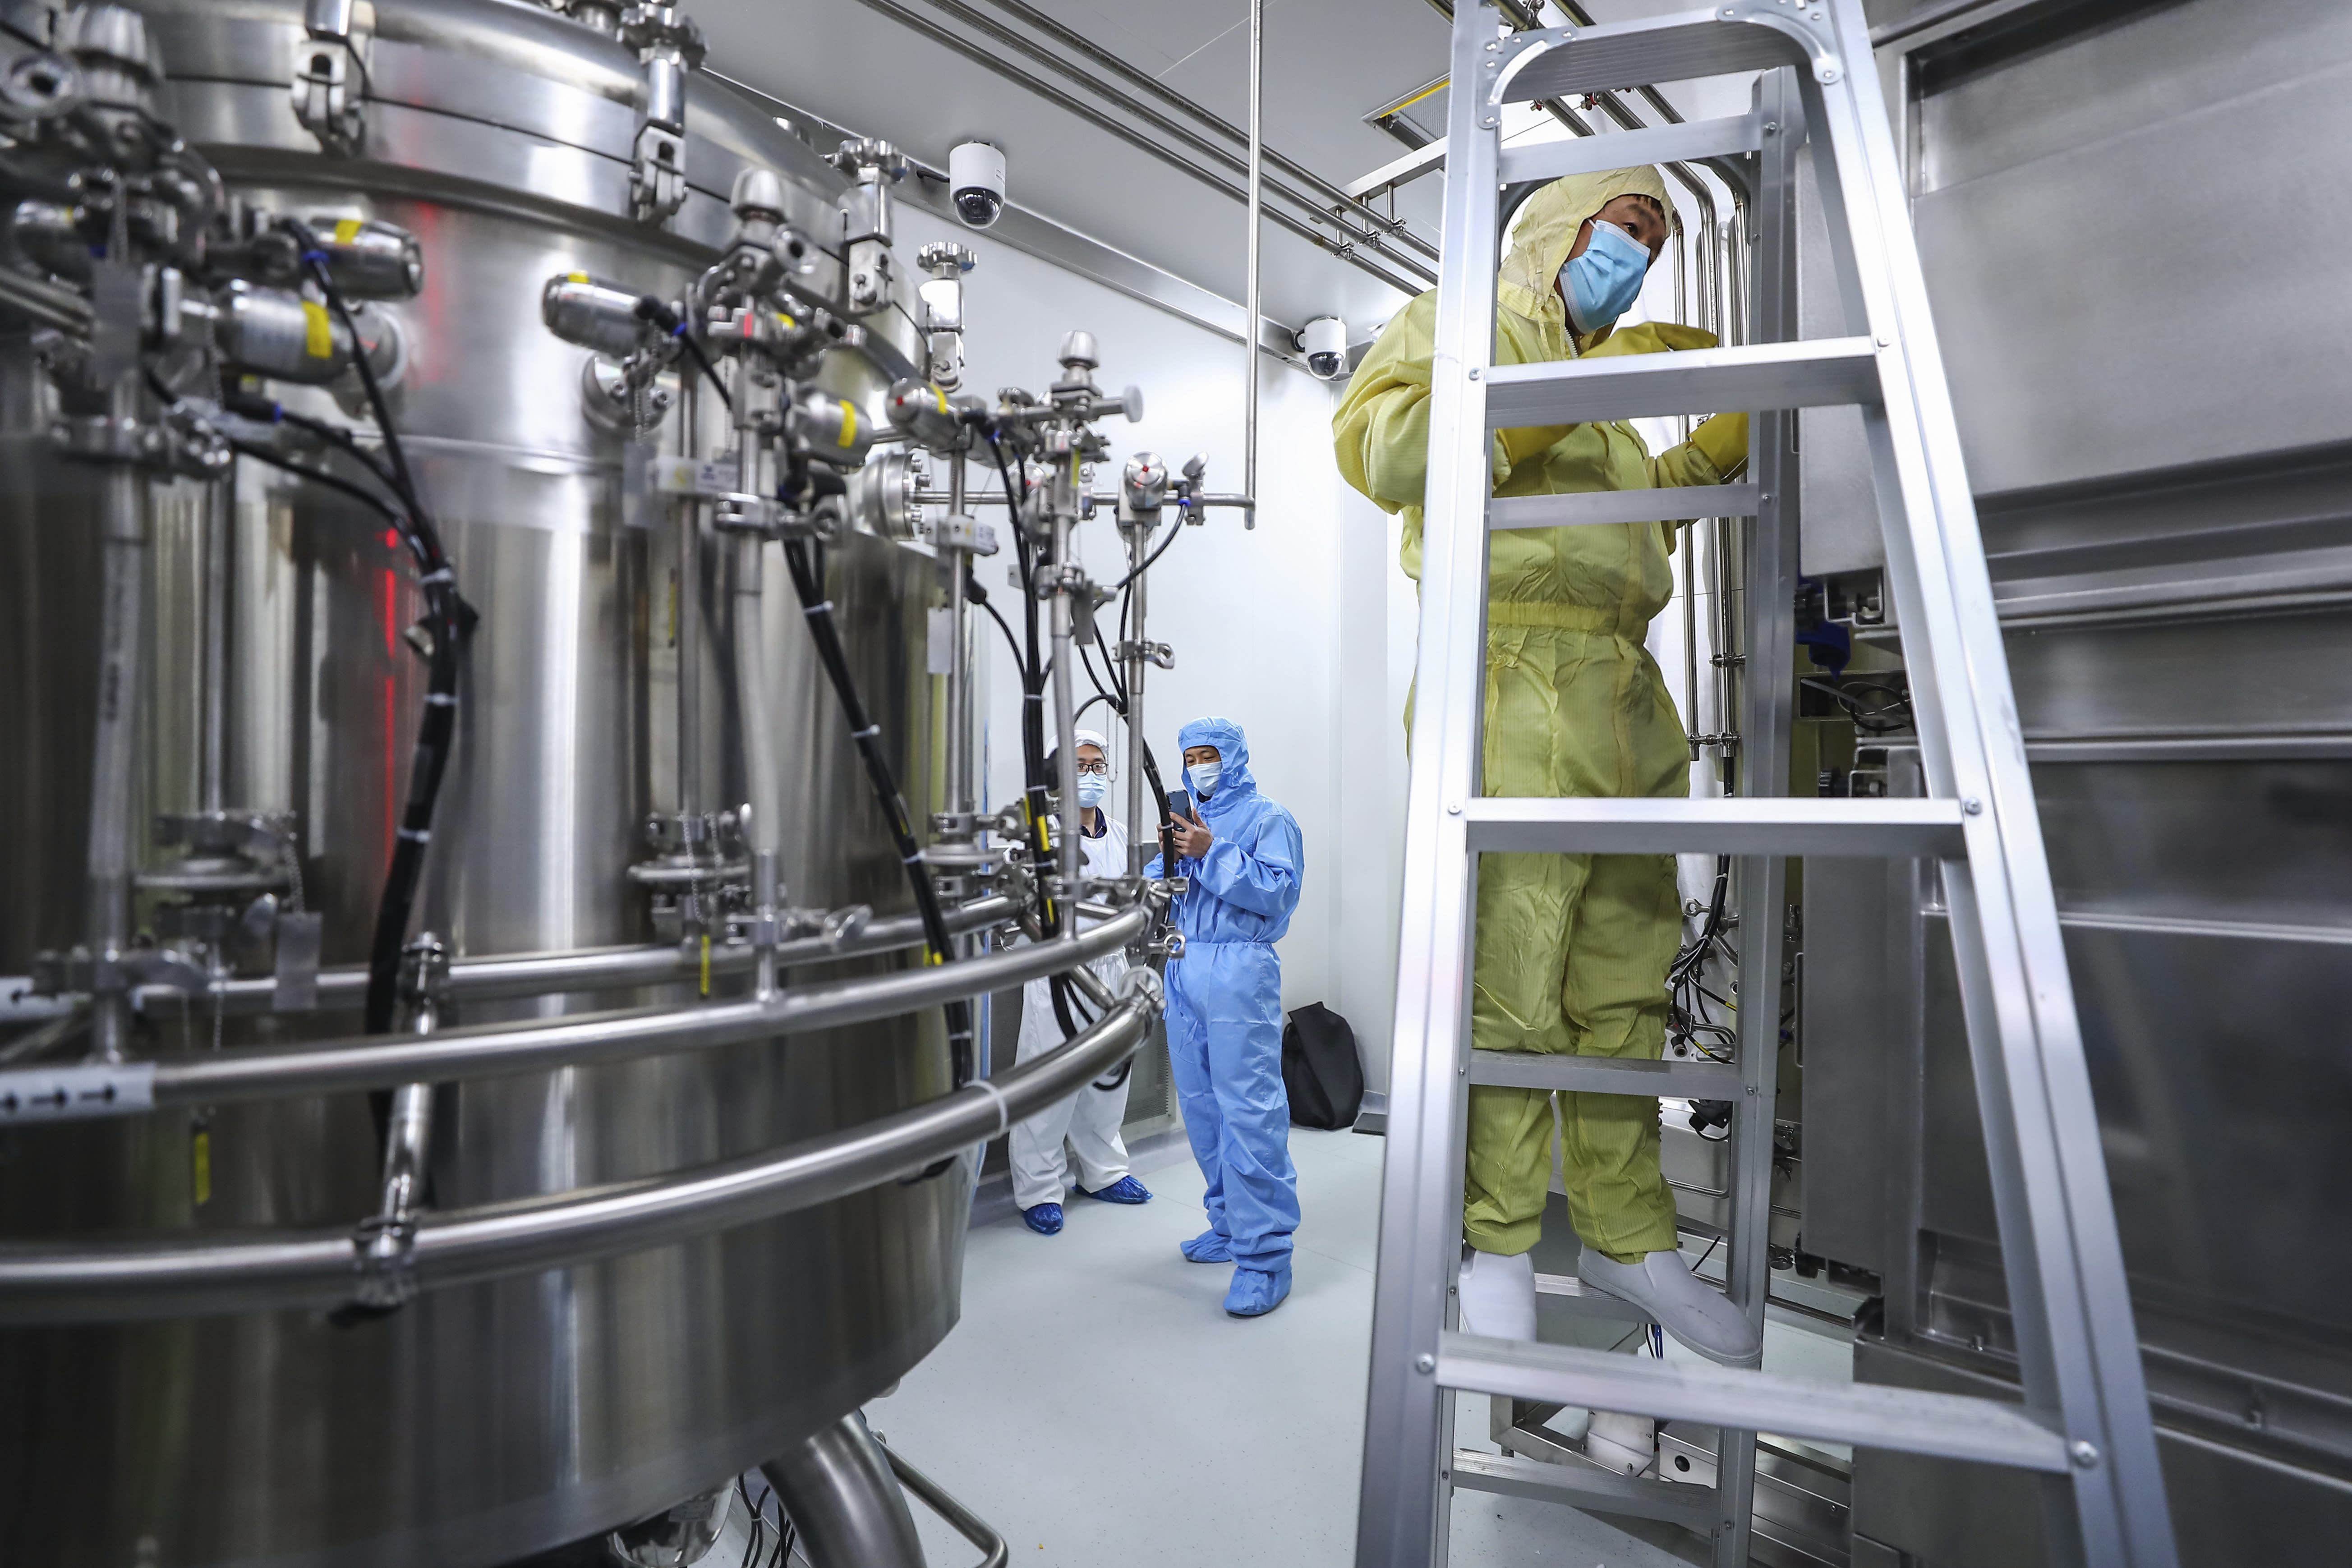 In this April 11, 2020, photo released by Xinhua News Agency, staff members check and clean equipments at a vaccine production plant of SinoPharm in Beijing. In the global race to make a coronavirus vaccine, the state-owned Chinese company is boasting that it gave its employees, including top executives, experimental shots even before the government OK'd testing in people. (Zhang Yuwei/Xinhua via AP)